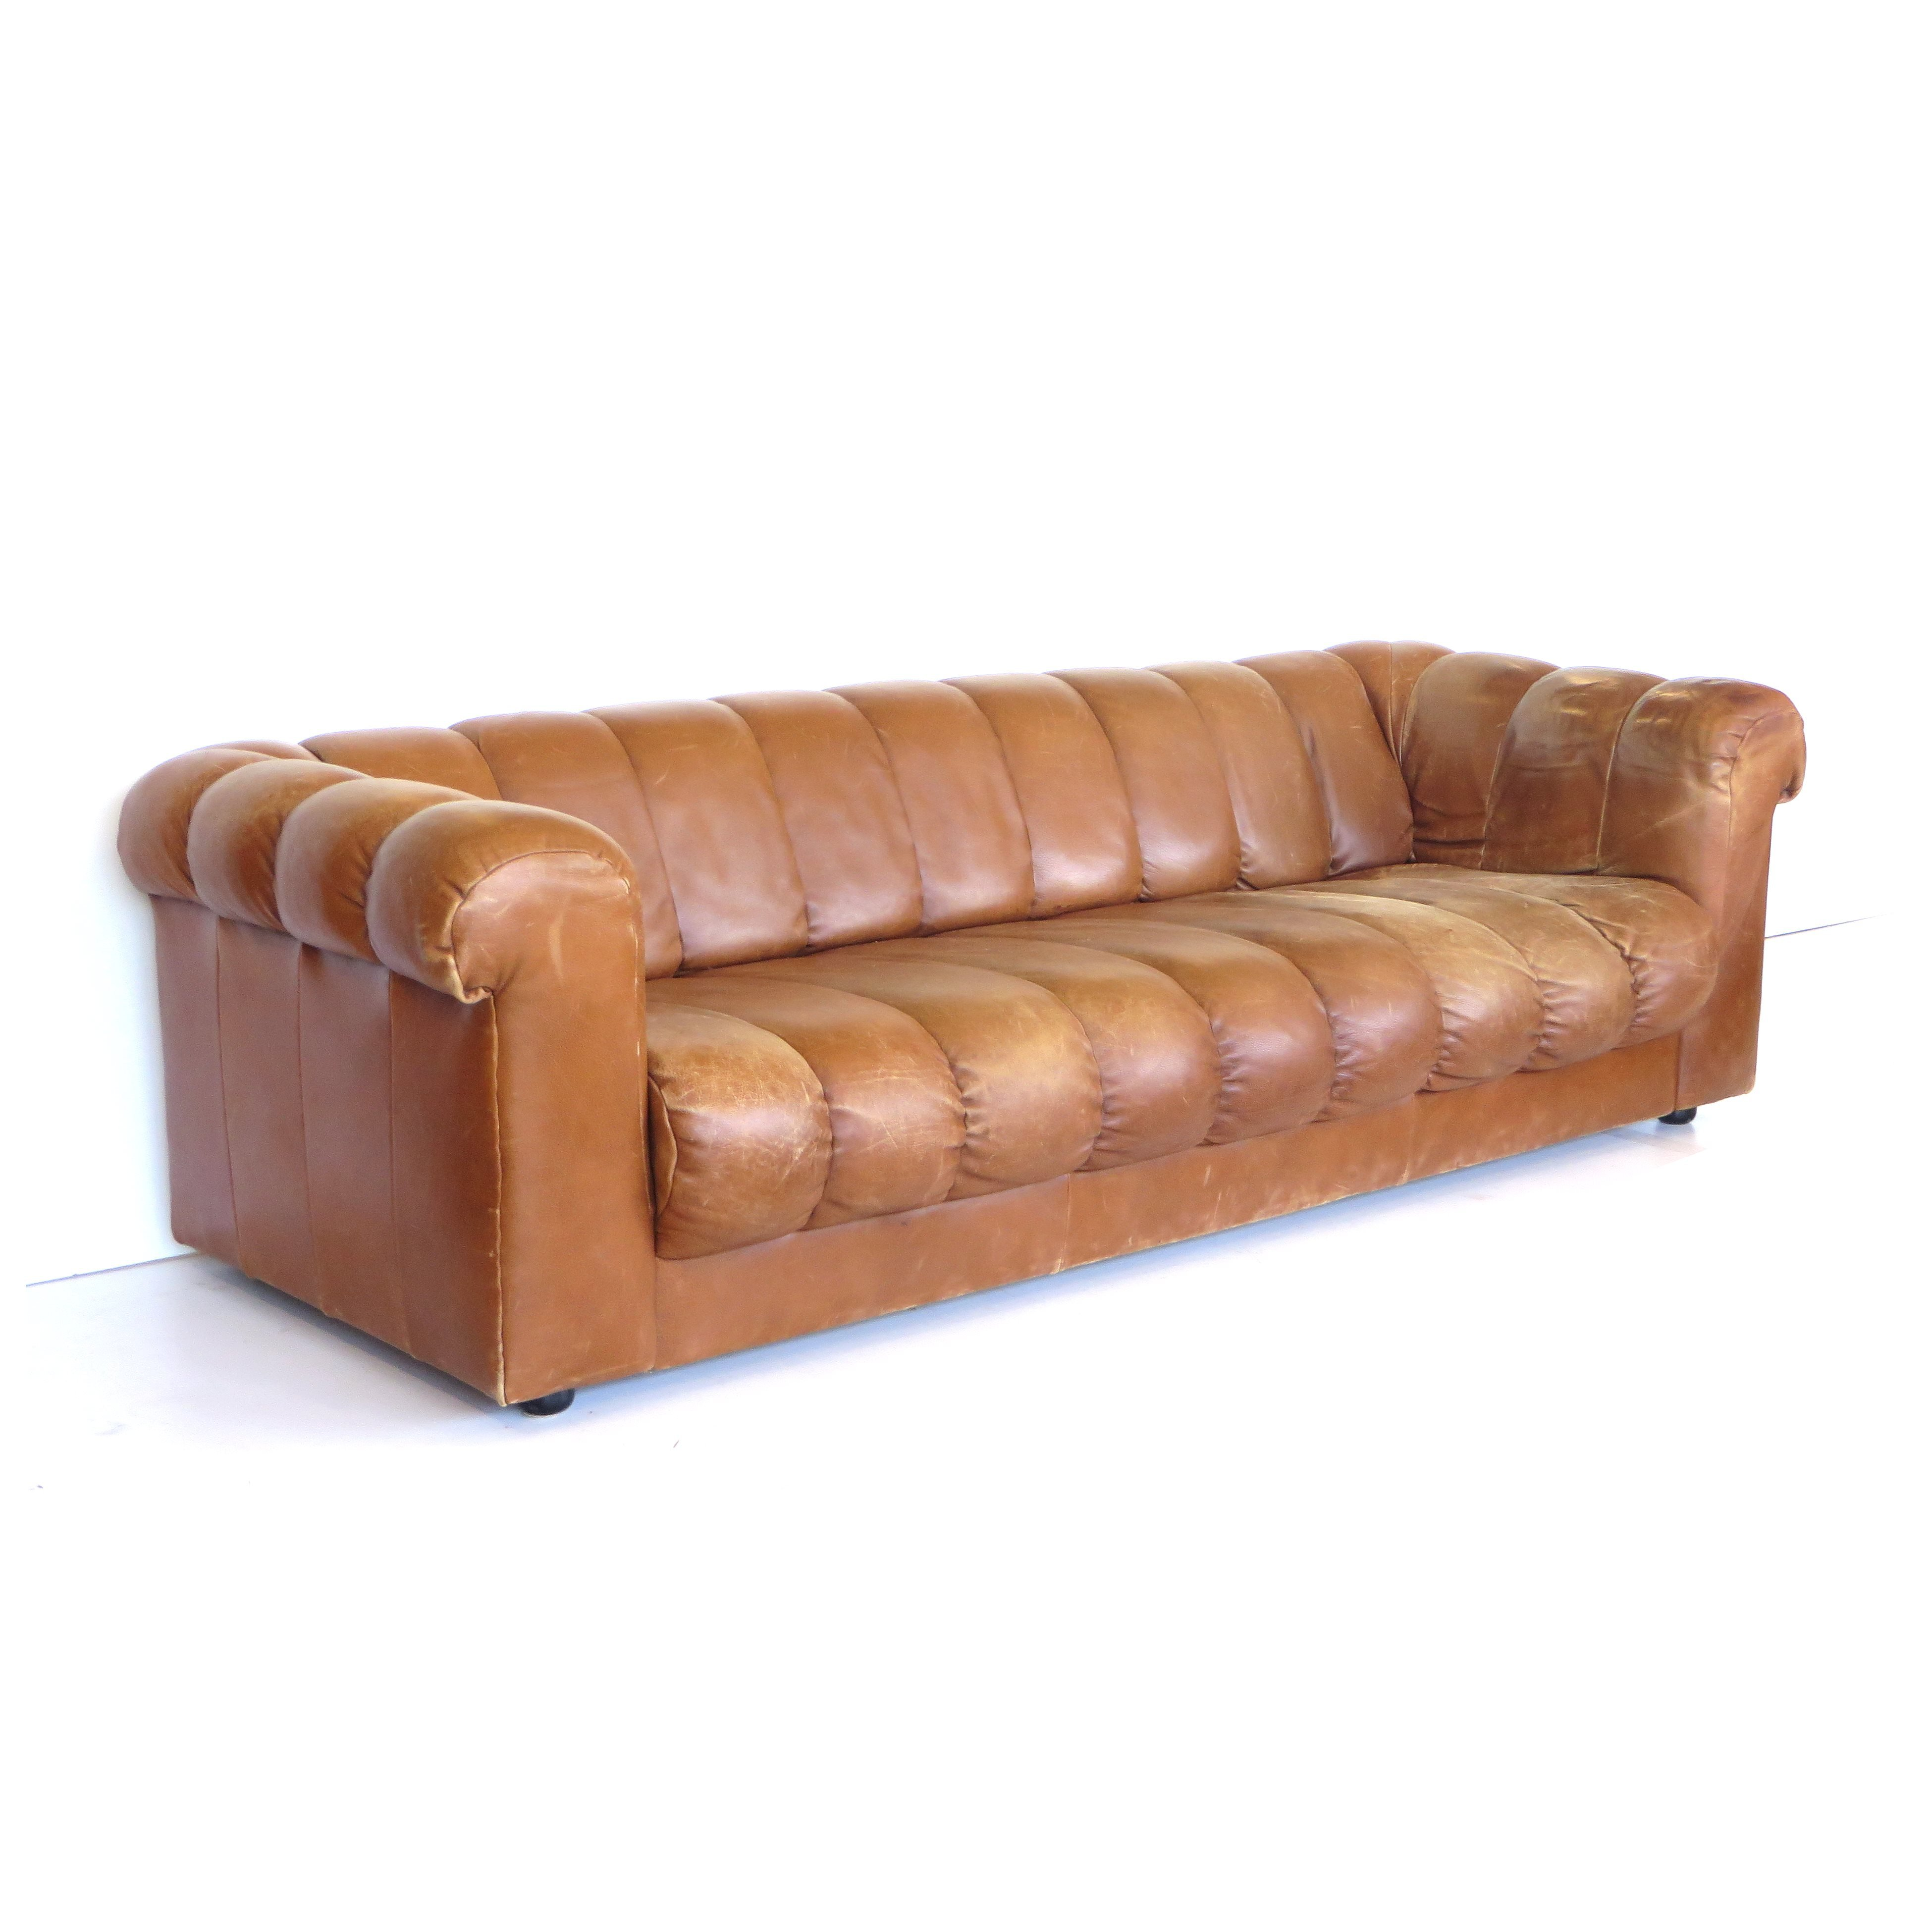 High Quality Cognac Leather Vintage Sofa 1960s